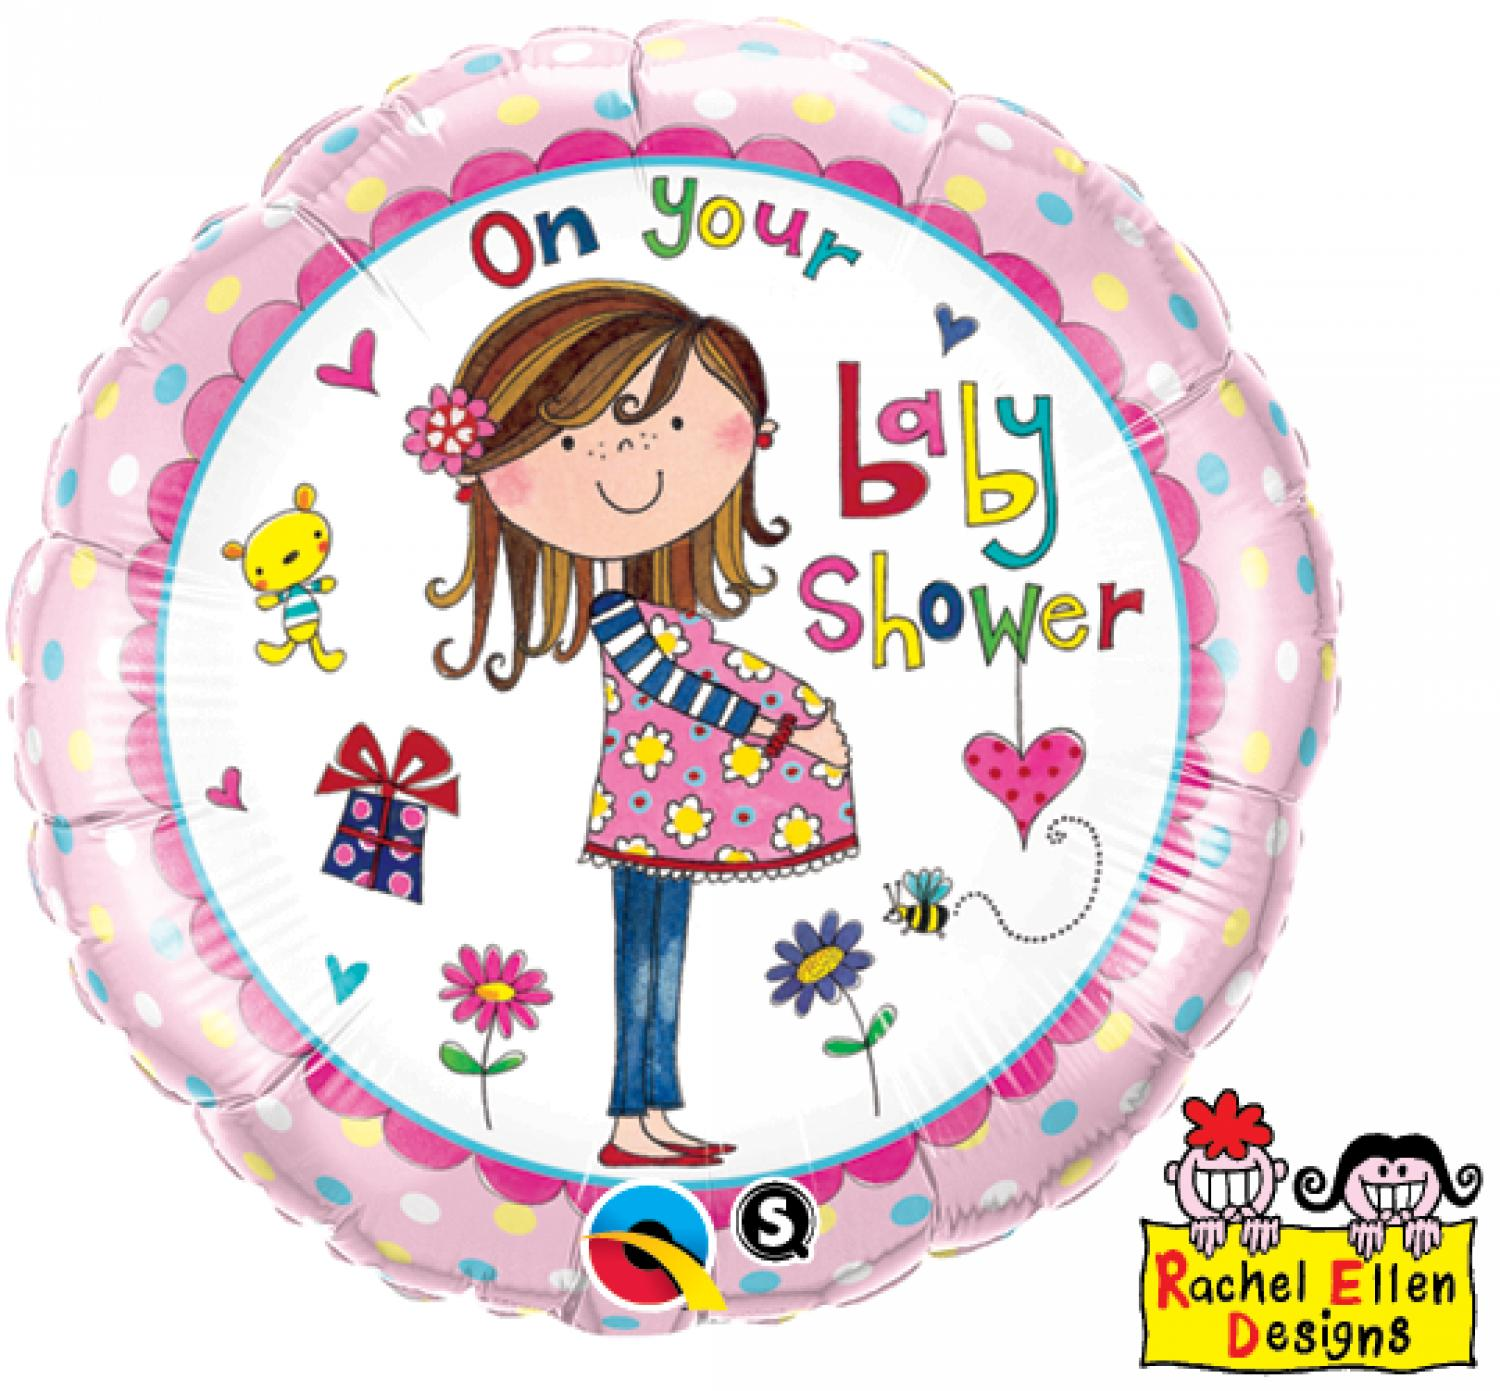 On Your Baby Shower Foil Balloon